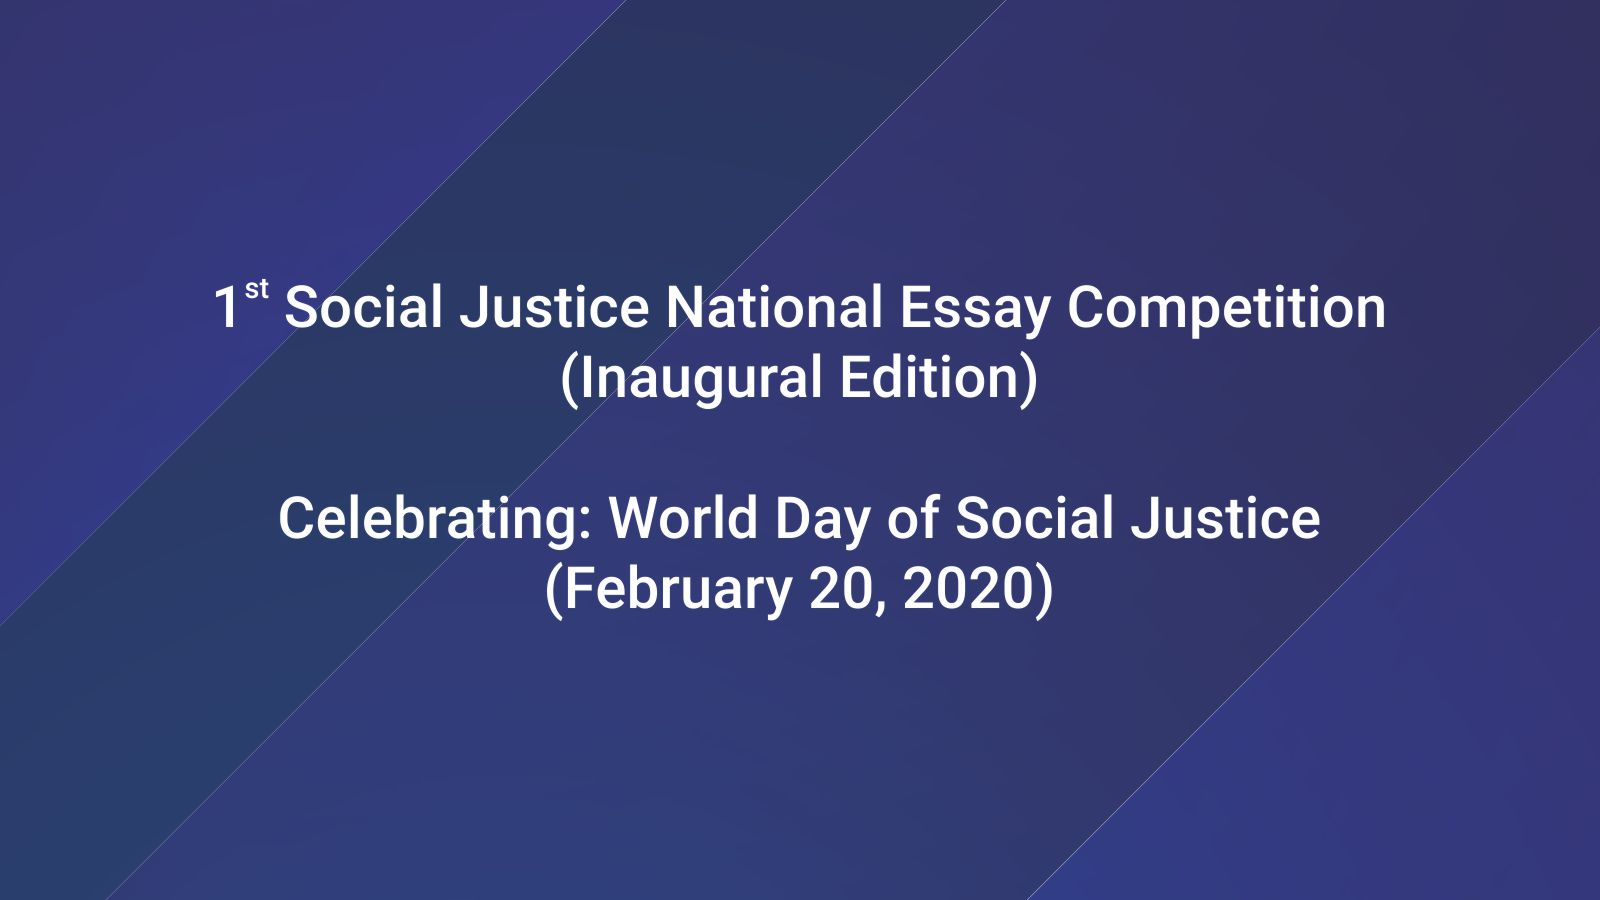 1st Social Justice National Essay Competition Image